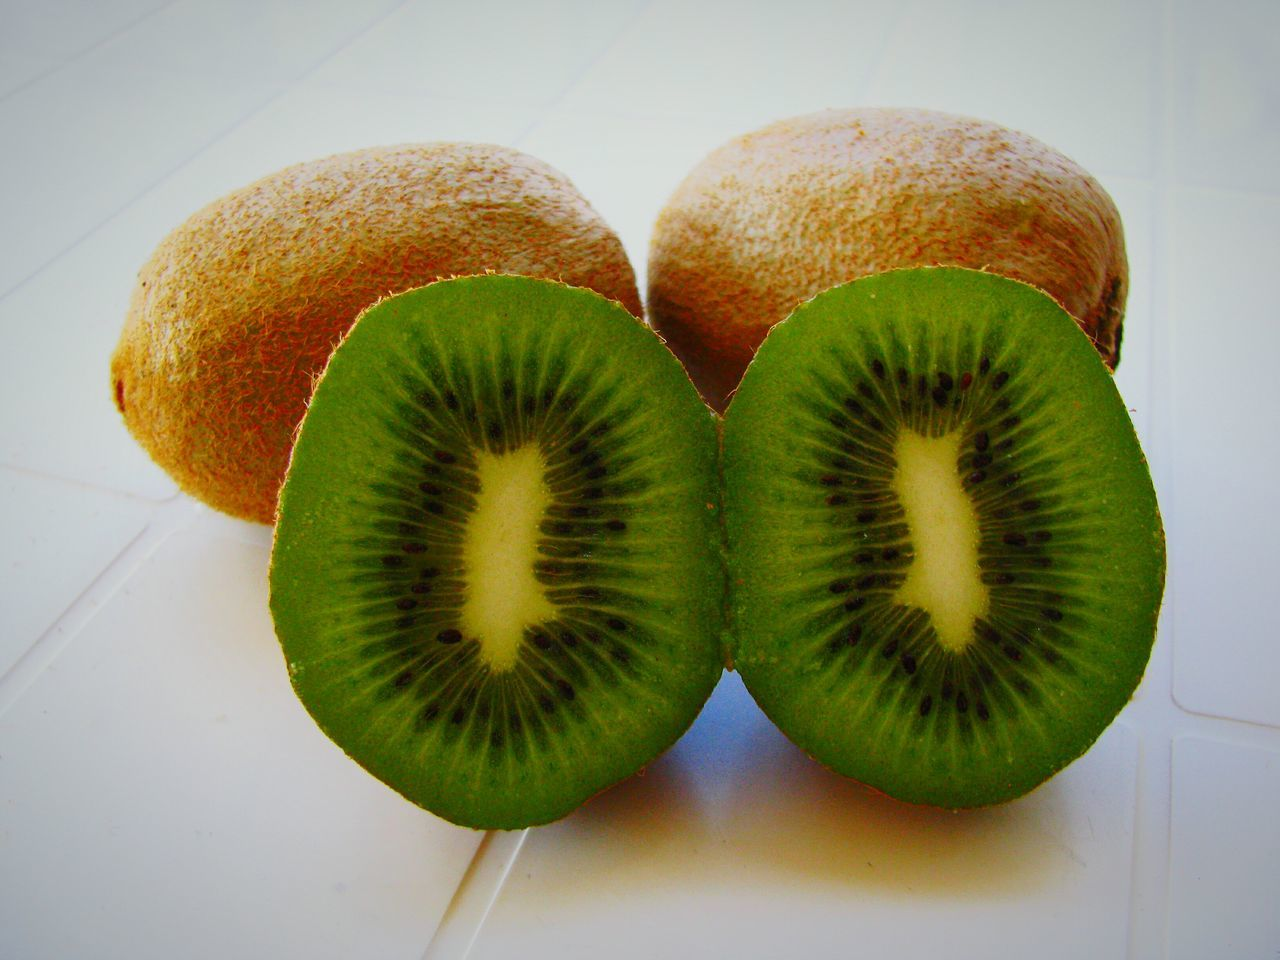 Kiwis Diet & Fitness Kiwi Green Fruit Diet Food And Drink Fruit Dietfood Close-up Green Food Green Color Ready-to-eat Kiwi - Fruit Freshness Nutritious Healthy Food Still Life My World Of Food Healthy Eating Delicious Food Photography